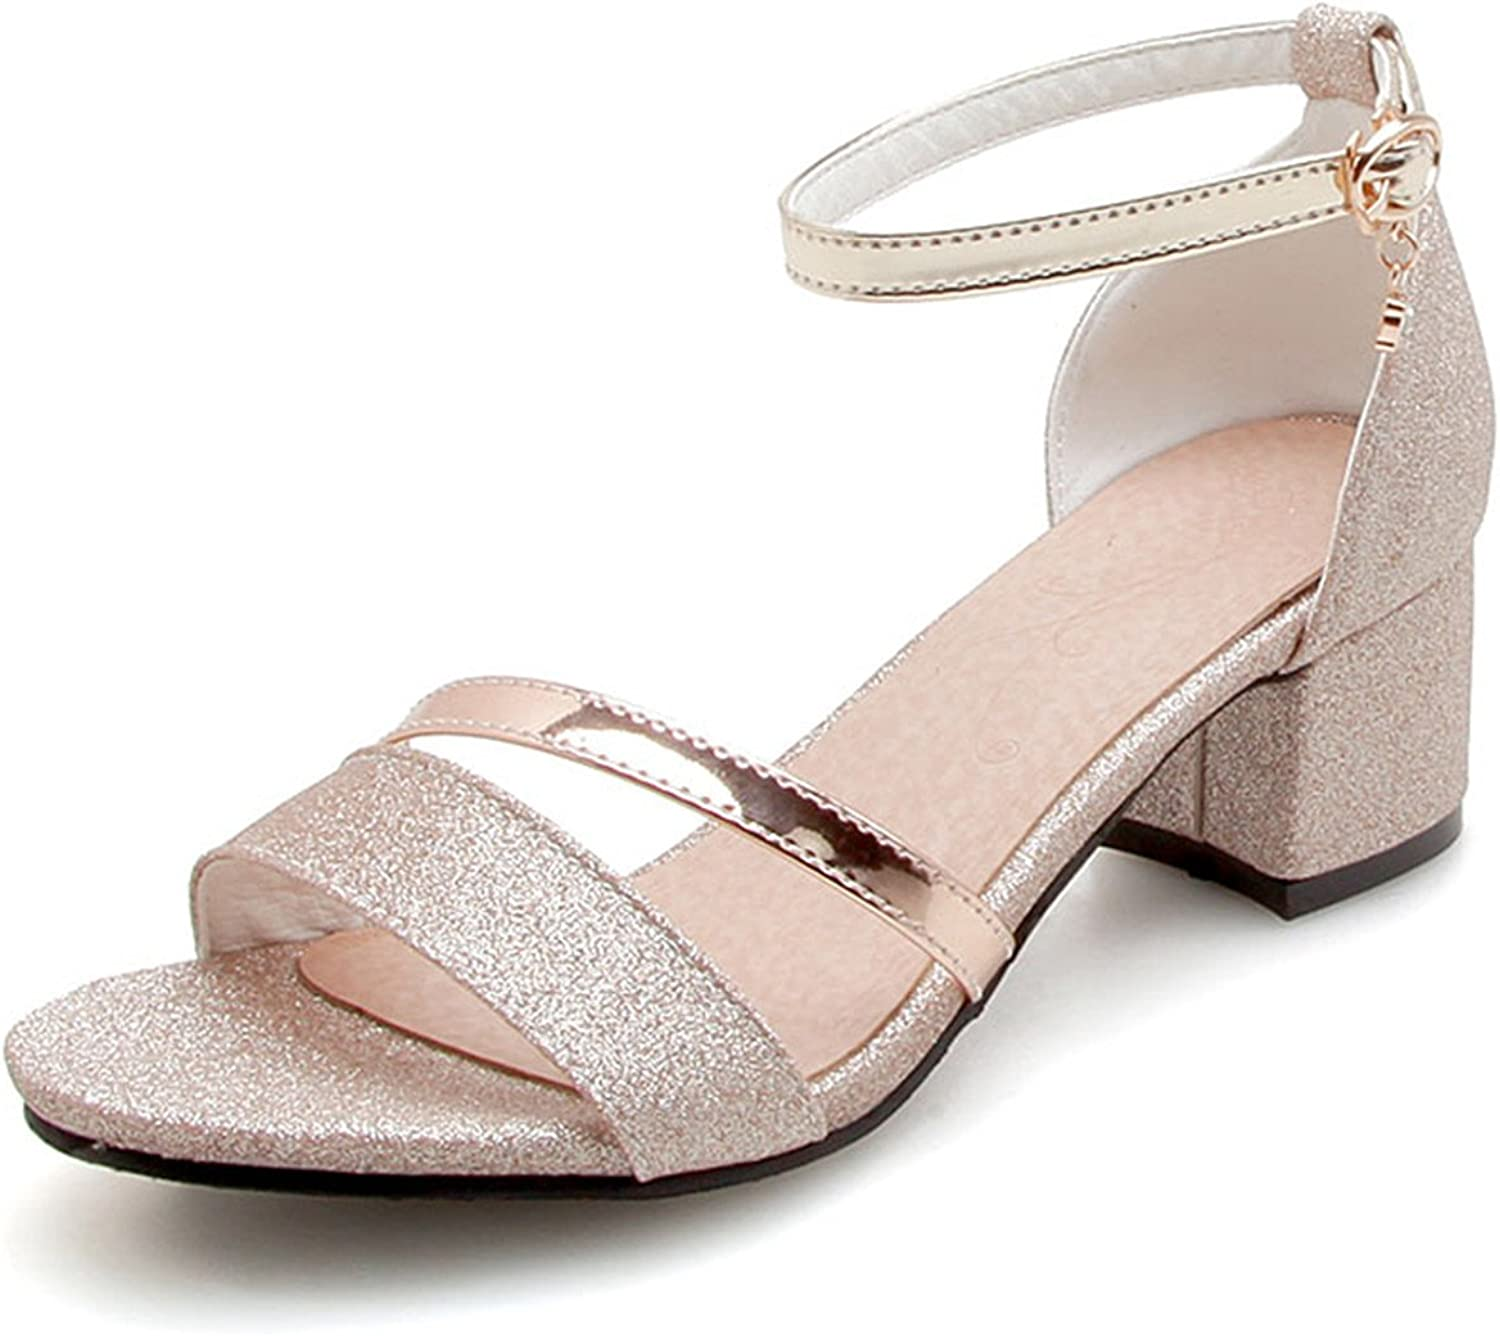 Thick Heel Sandals Women New Summer Comfortable Med Heels Open Toe Fashion shoes Woman Casual Sandals Size 31-50 B09